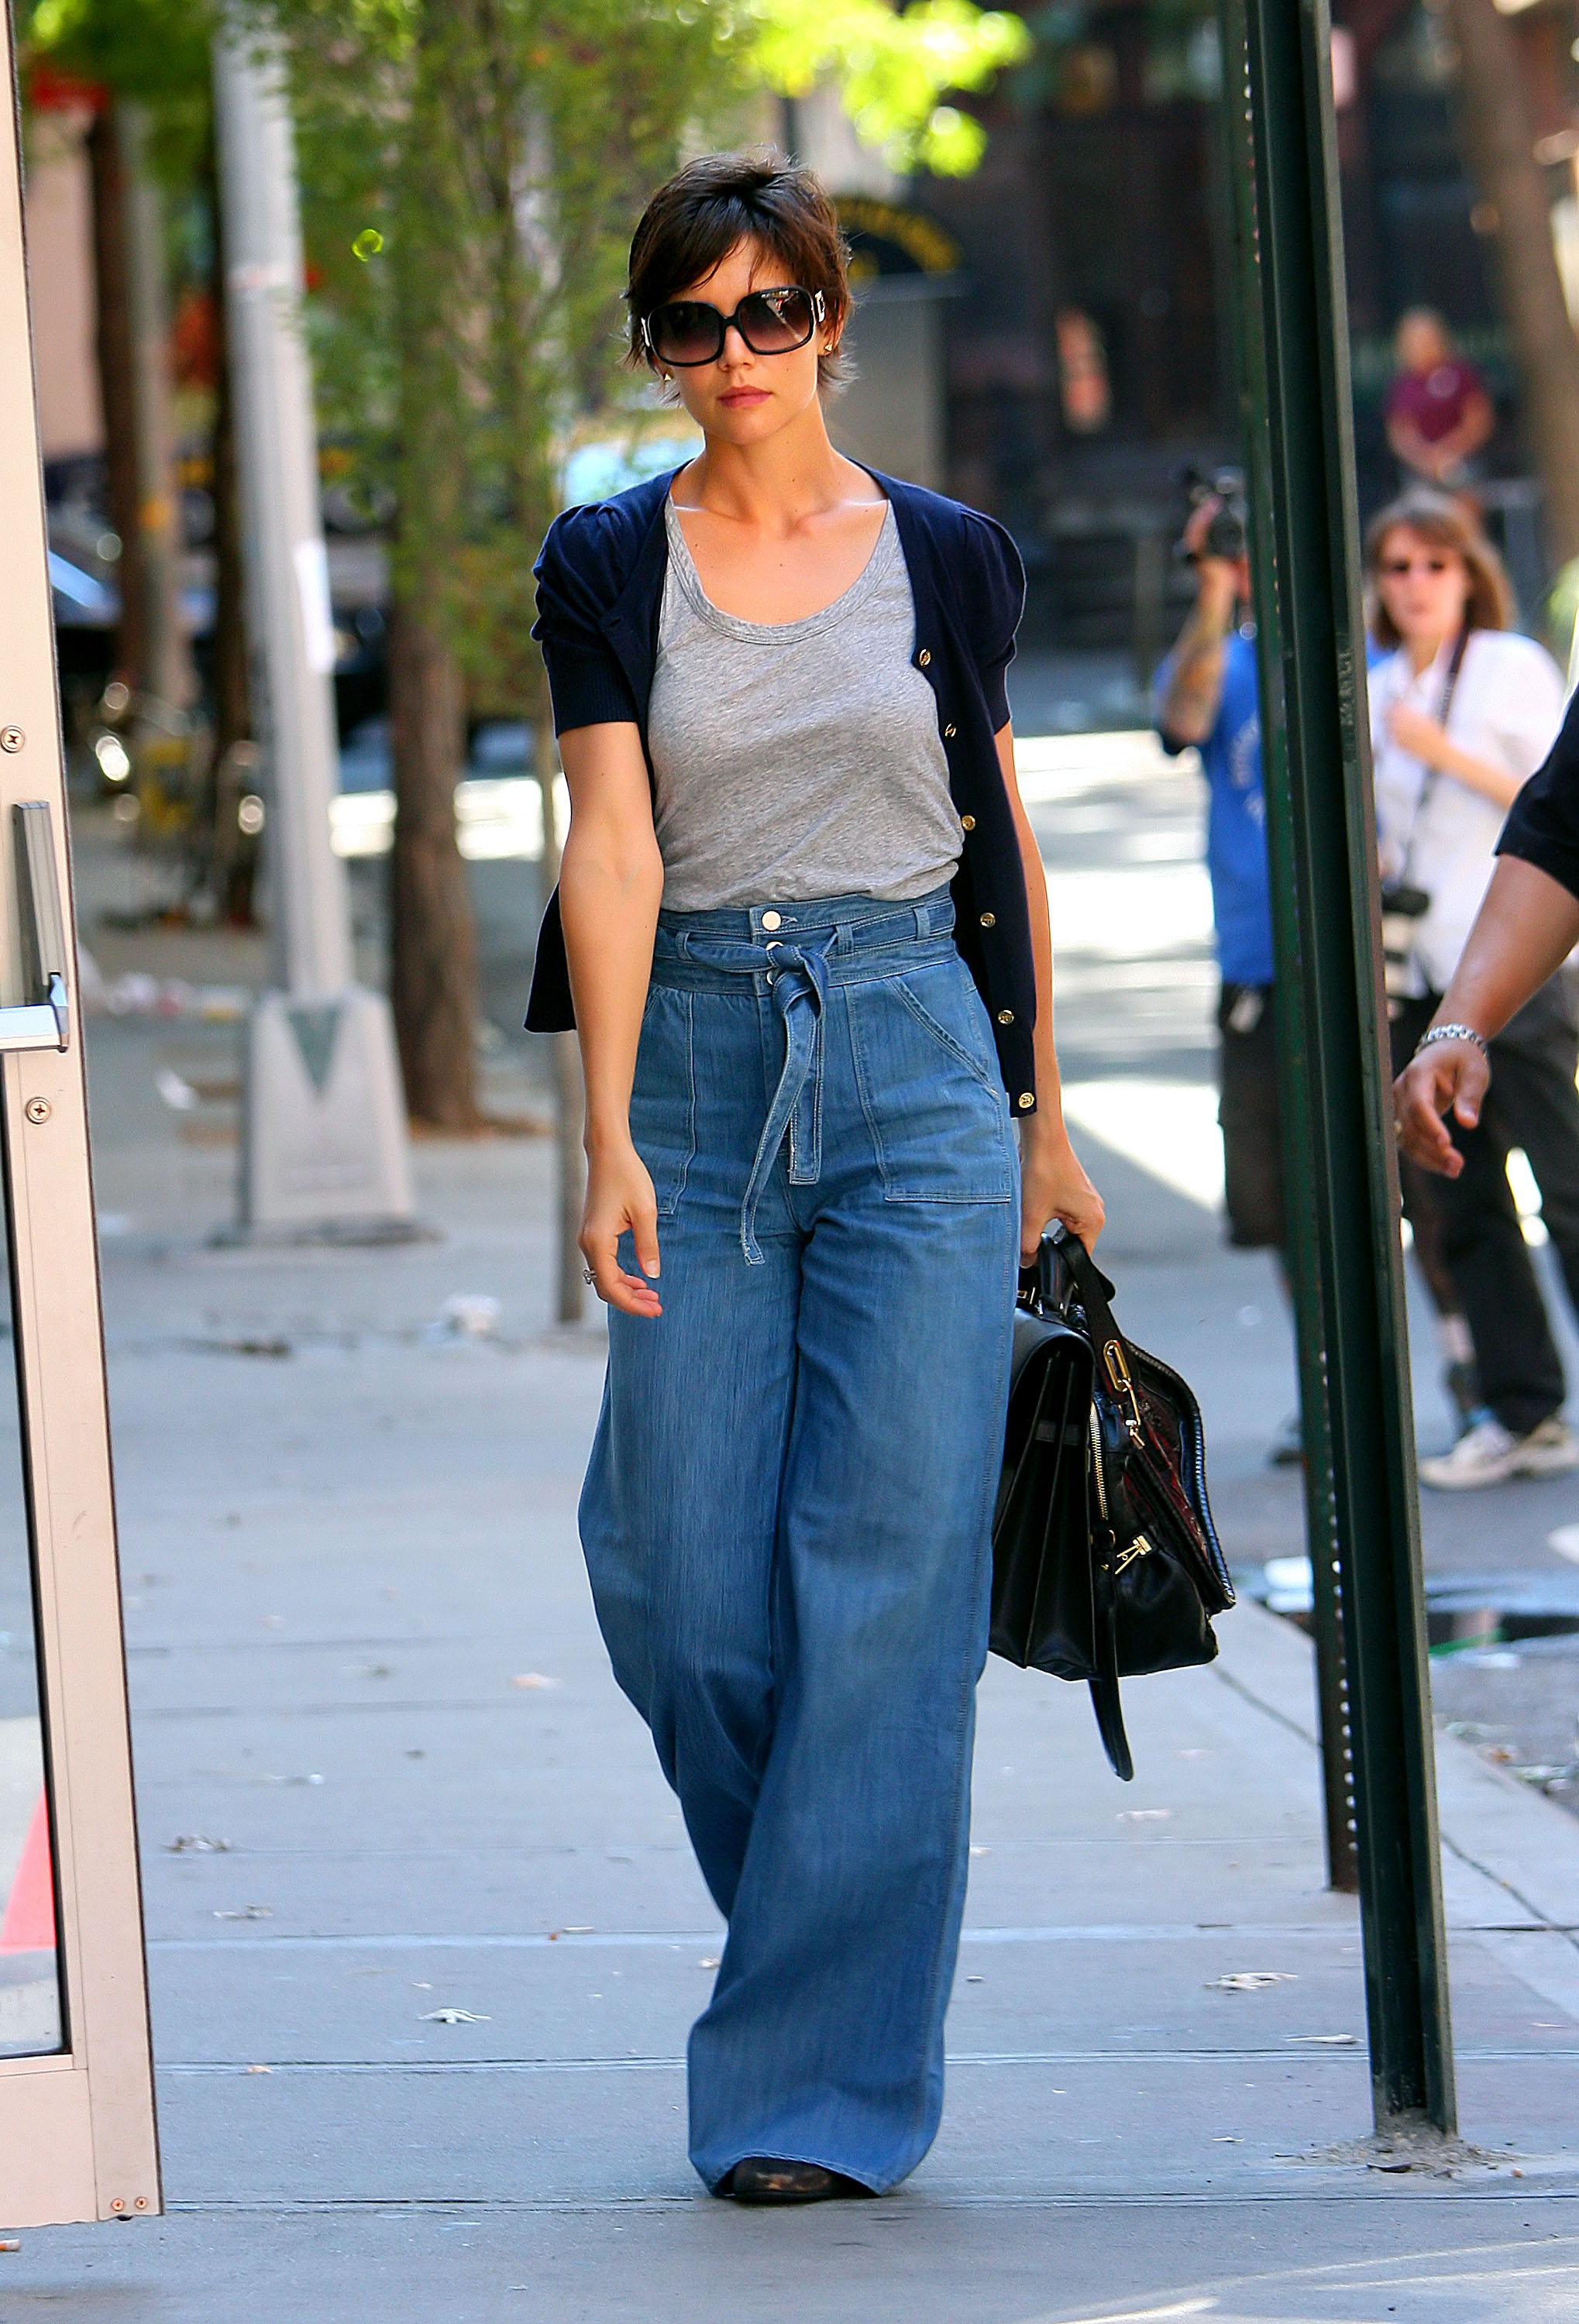 Katie Holmes arrives at rehearsals for her upcoming Broadway debut. <P> Pictured: Katie Holmes <P> <B>Ref: SPL43457 090808 </B><br> Picture by: Jackson Lee / Splash News </P><P> <B>Splash News and Pictures</B><br> Los Angeles: 310-821-2666<br> New York: 212-619-2666<br> London: 870-934-2666<br> <span id=